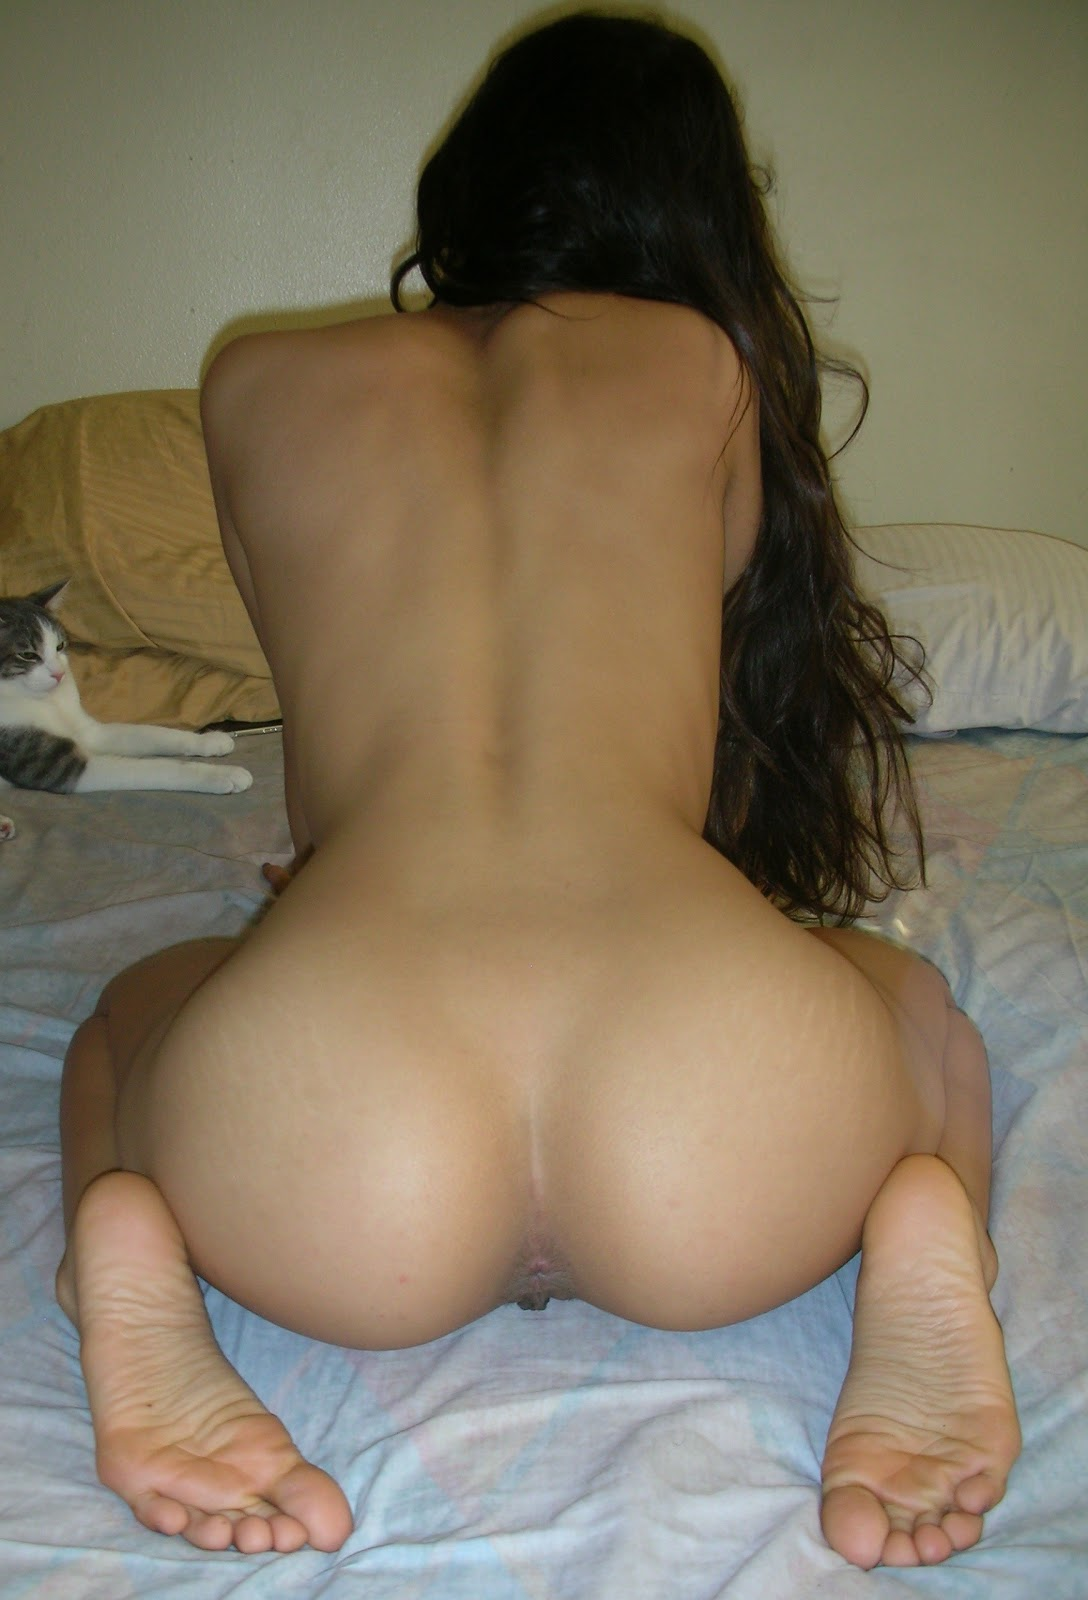 Pakisthani nude and anal